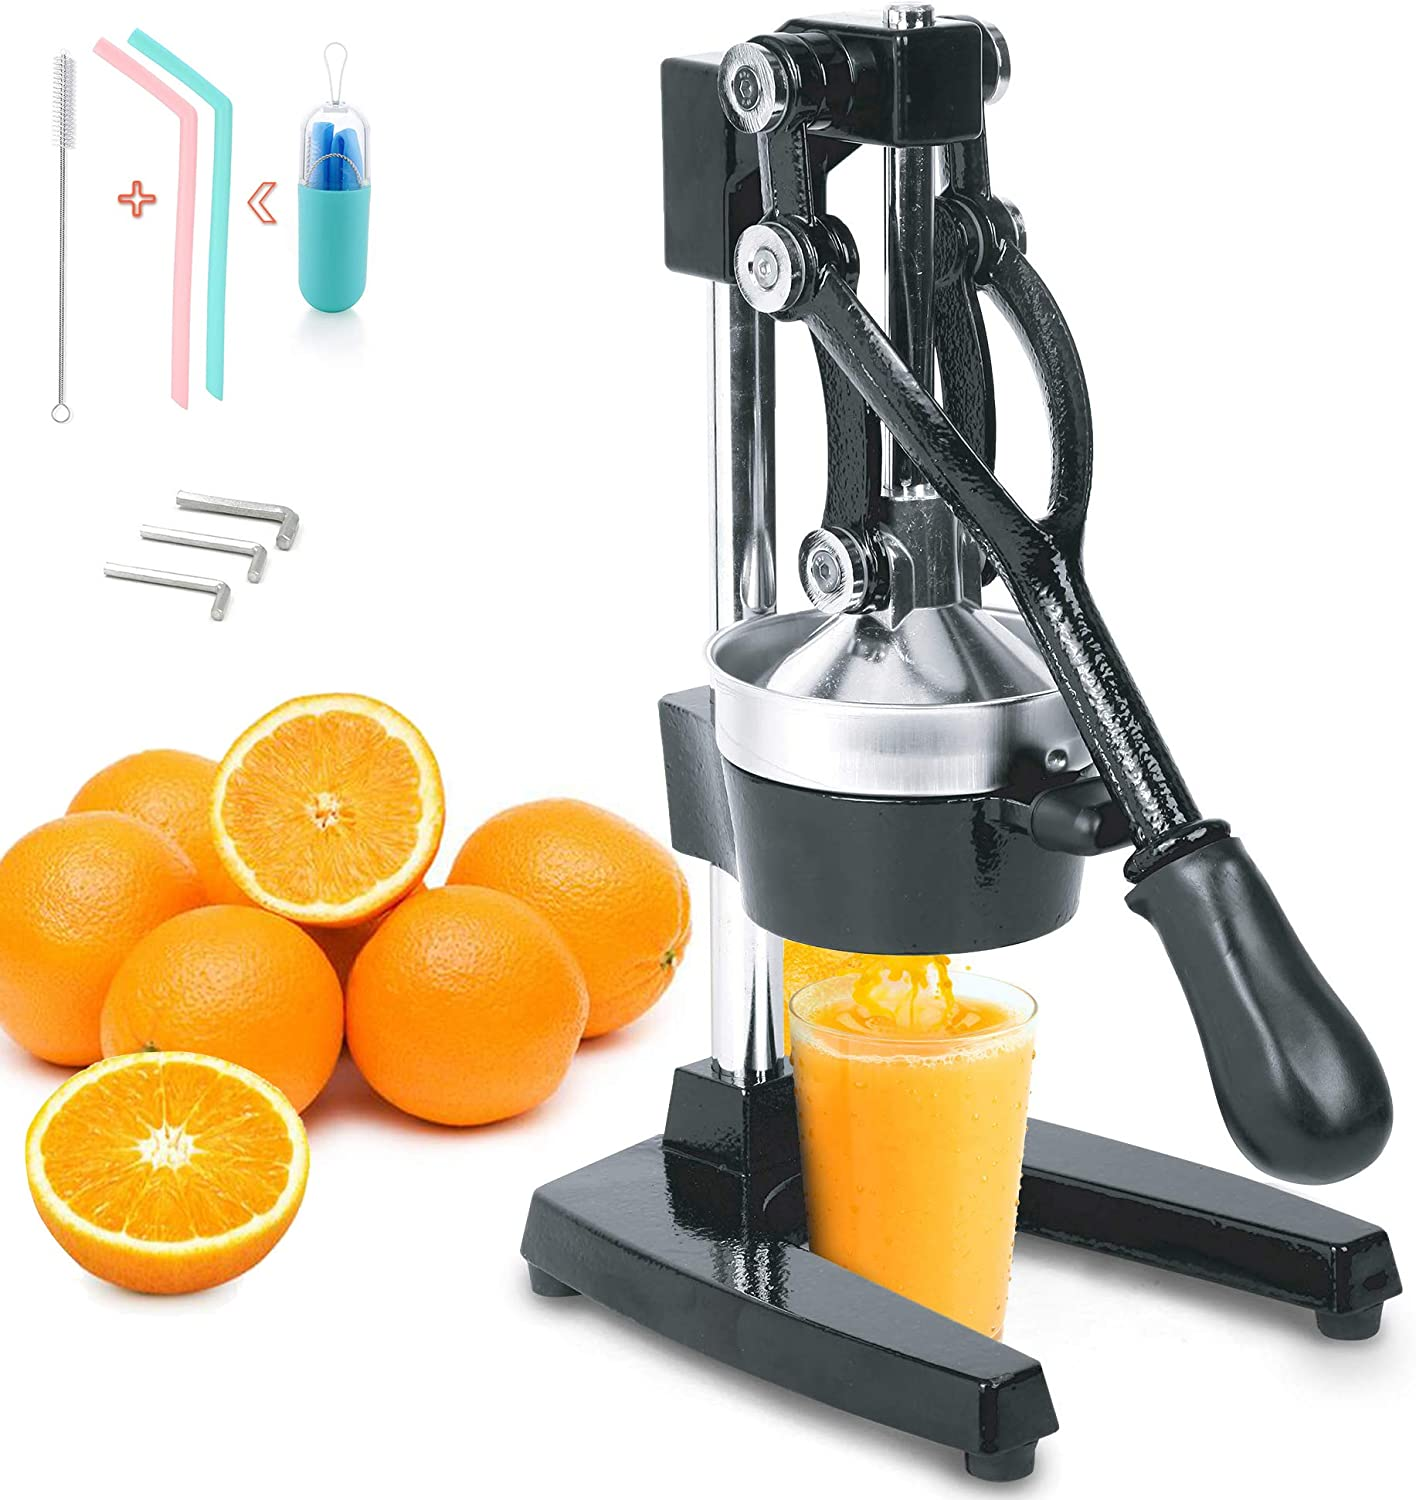 Cast Iron Juice Press Juicer Extra Large Heavy Duty Commercial CitrusLime Grapefruit Juice Stainless Steel Extractor Cast Iron Body - Bonus 2 Silicone Straws Drinking Reusable